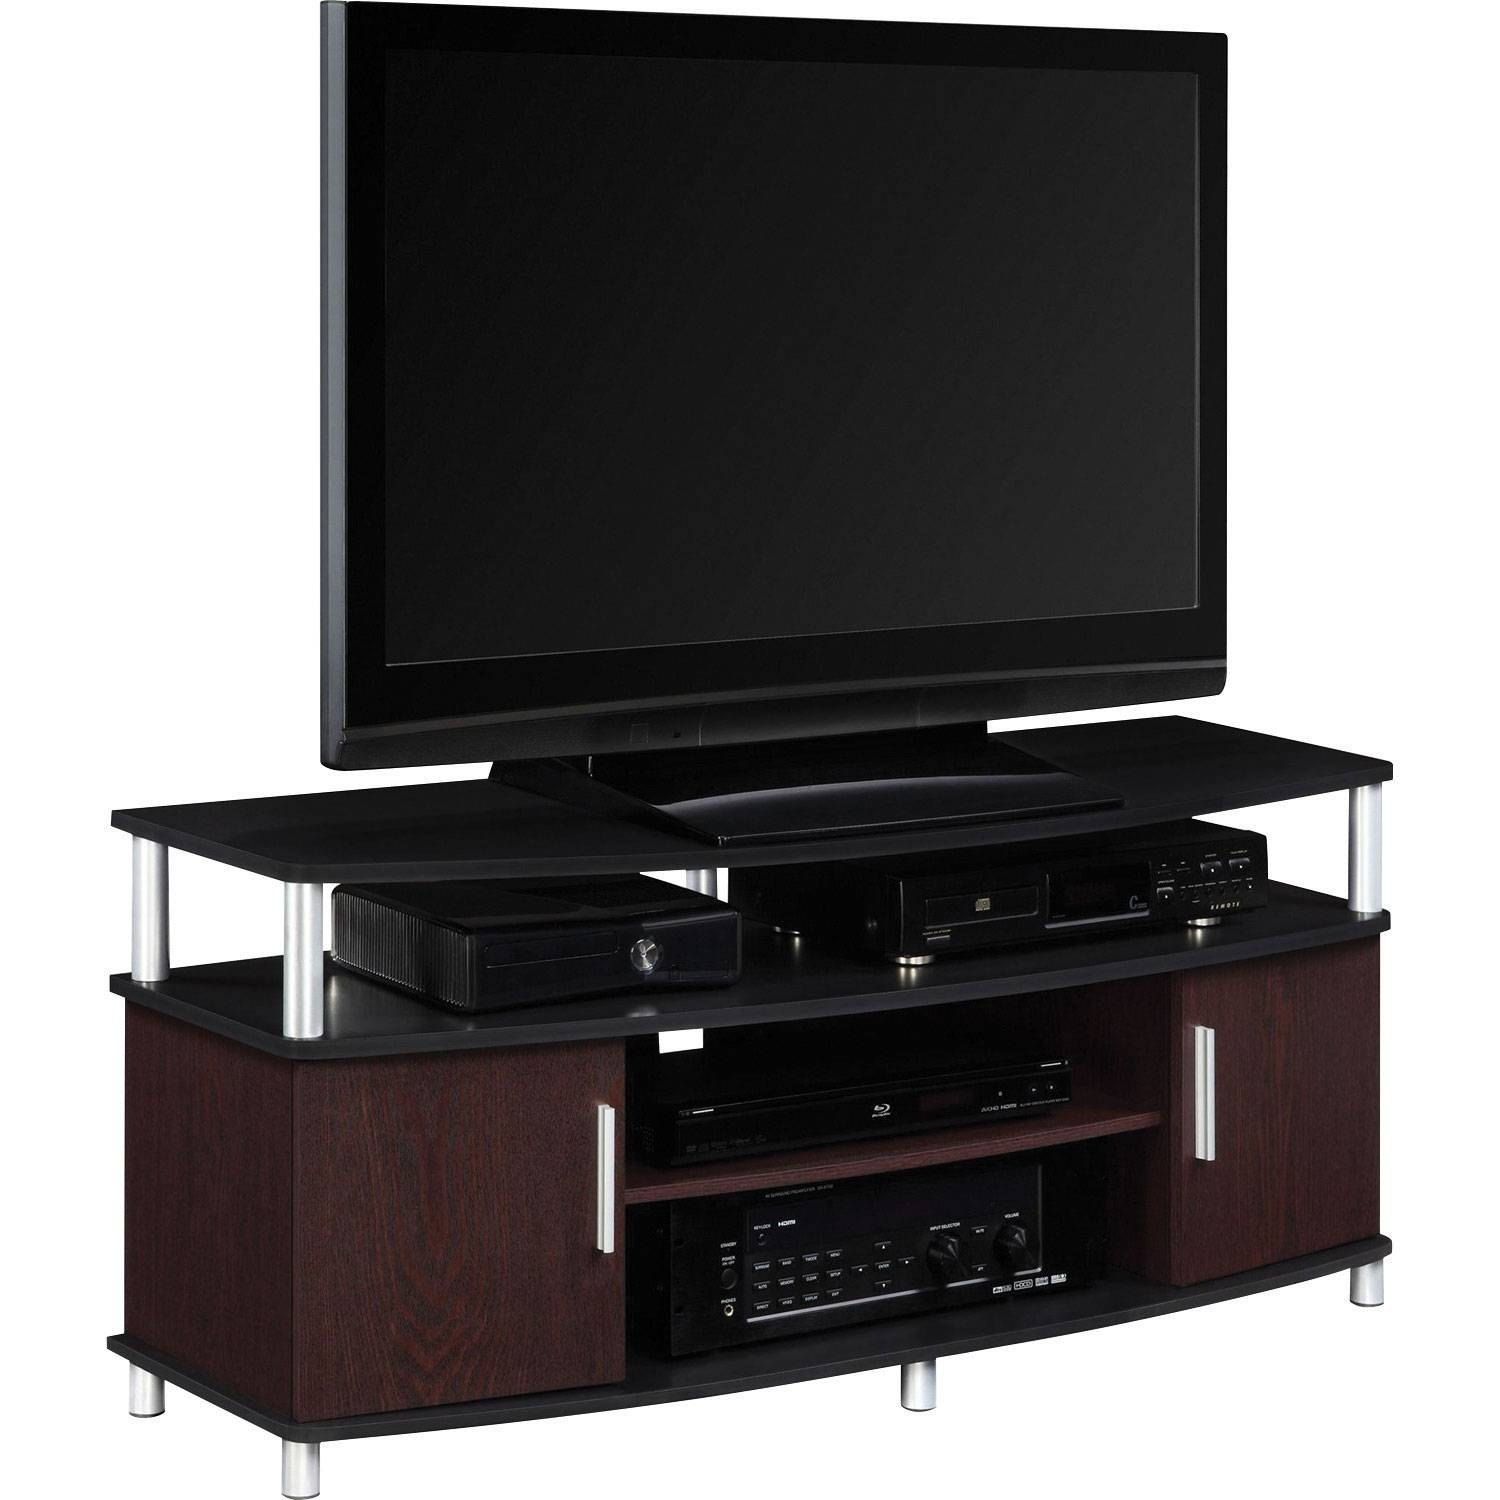 "Dorel Carson 50"" Tv Stand - Cherry/black : Tv Stands - Best Buy Canada with regard to Cherry Tv Stands (Image 8 of 15)"